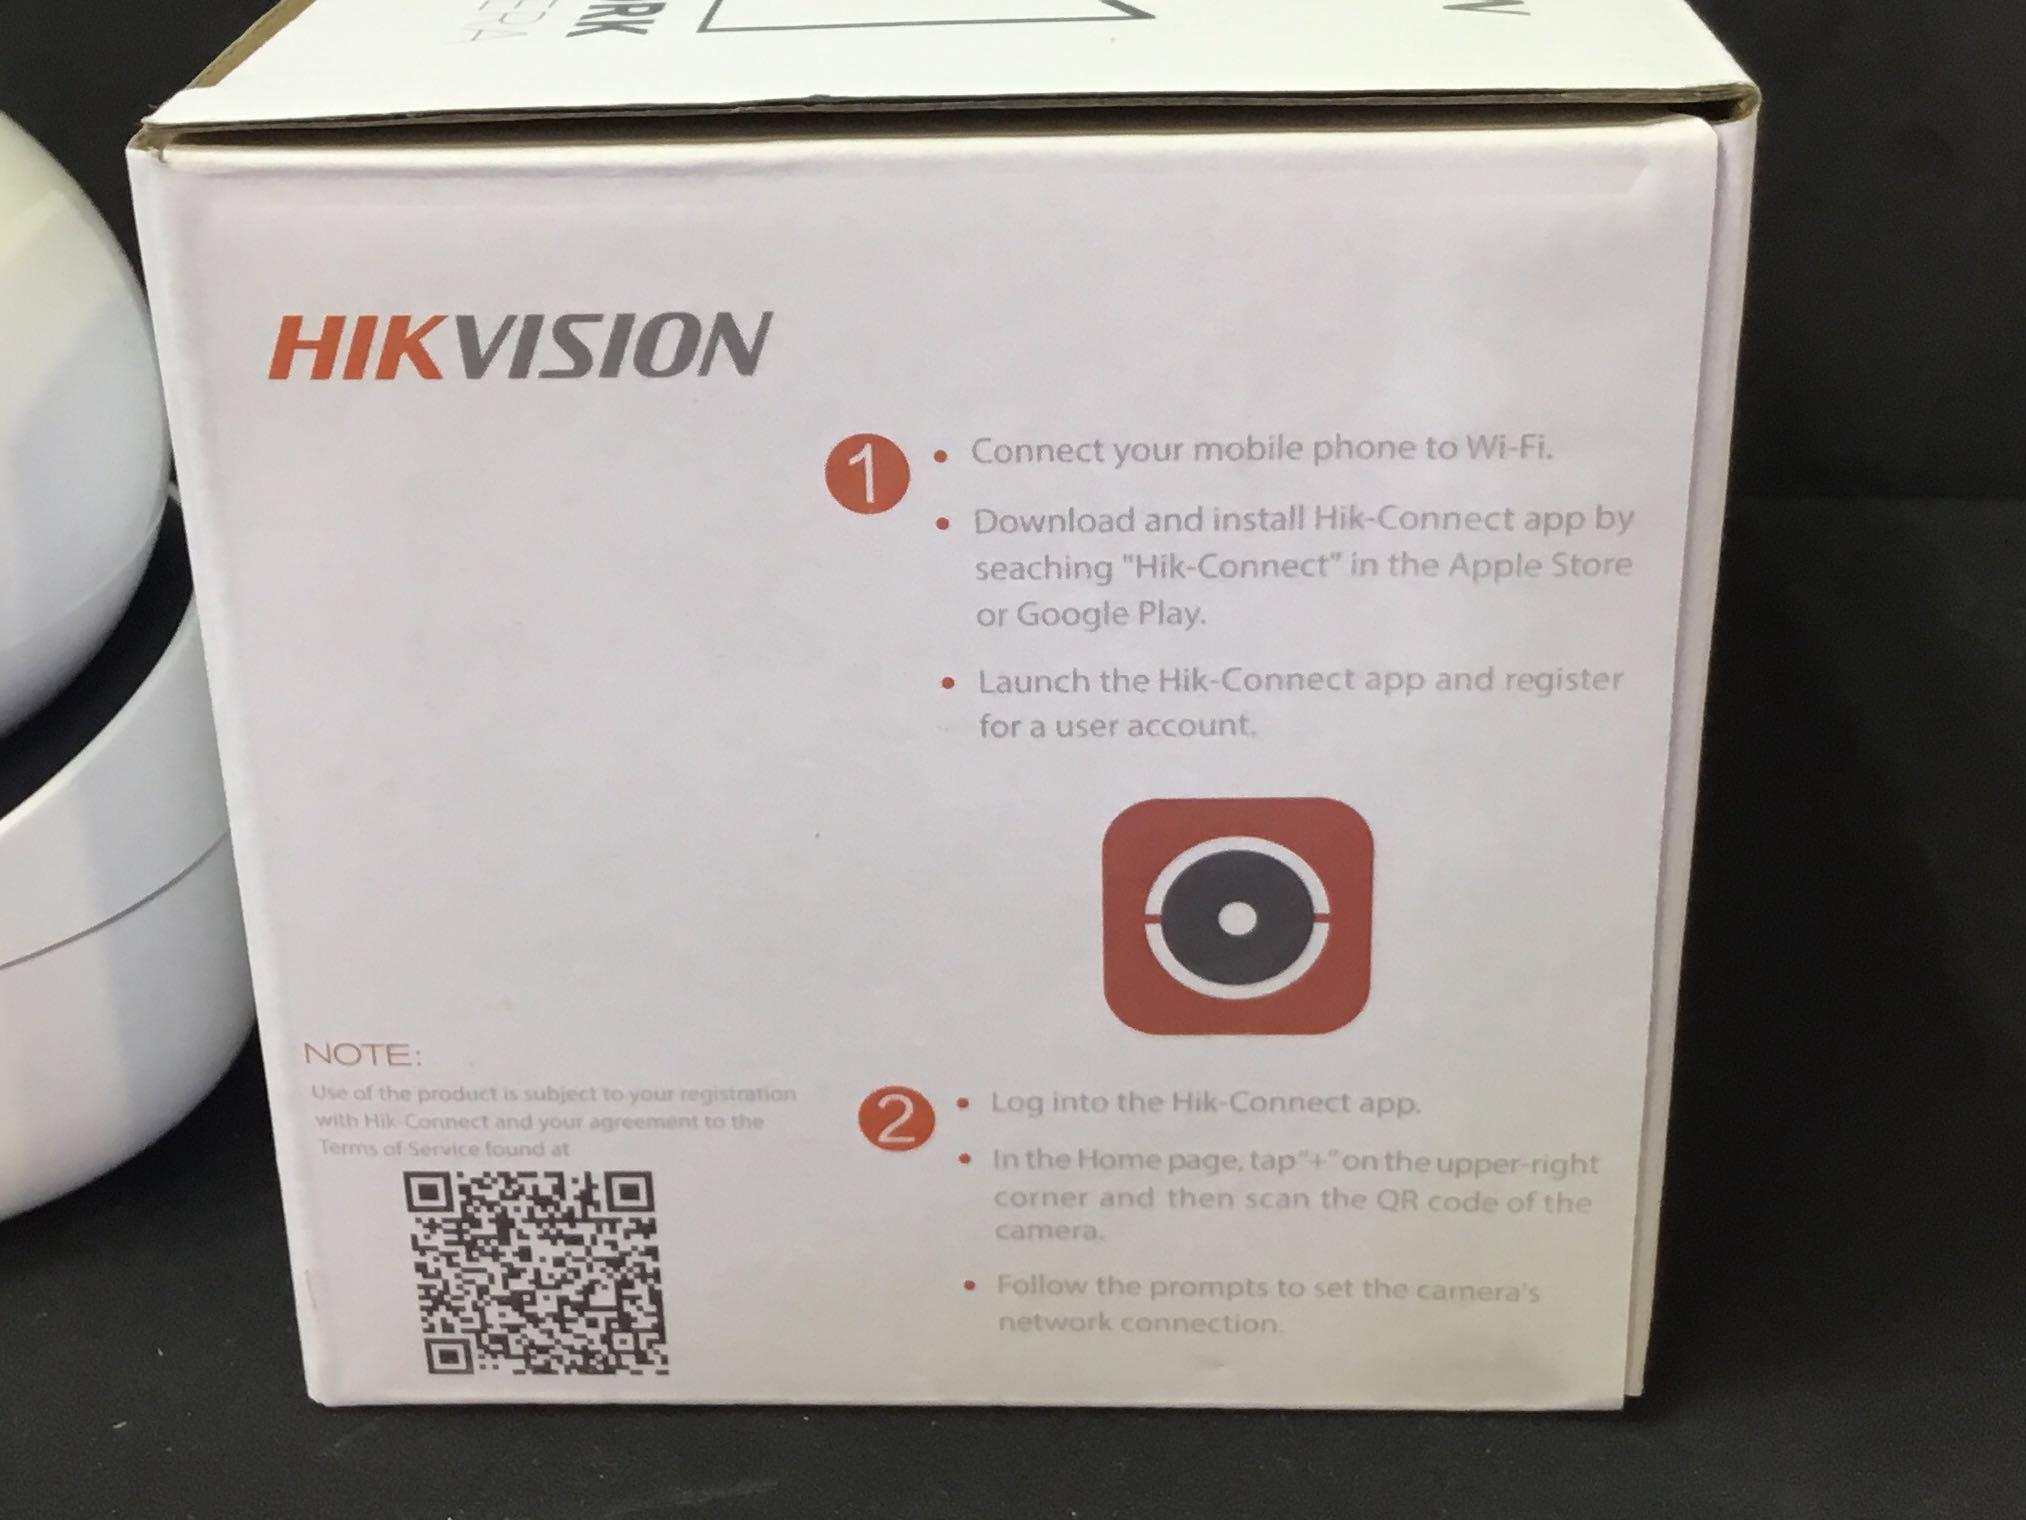 Hikvision Q1 WiFi PT Camera, Electronics, Others on Carousell